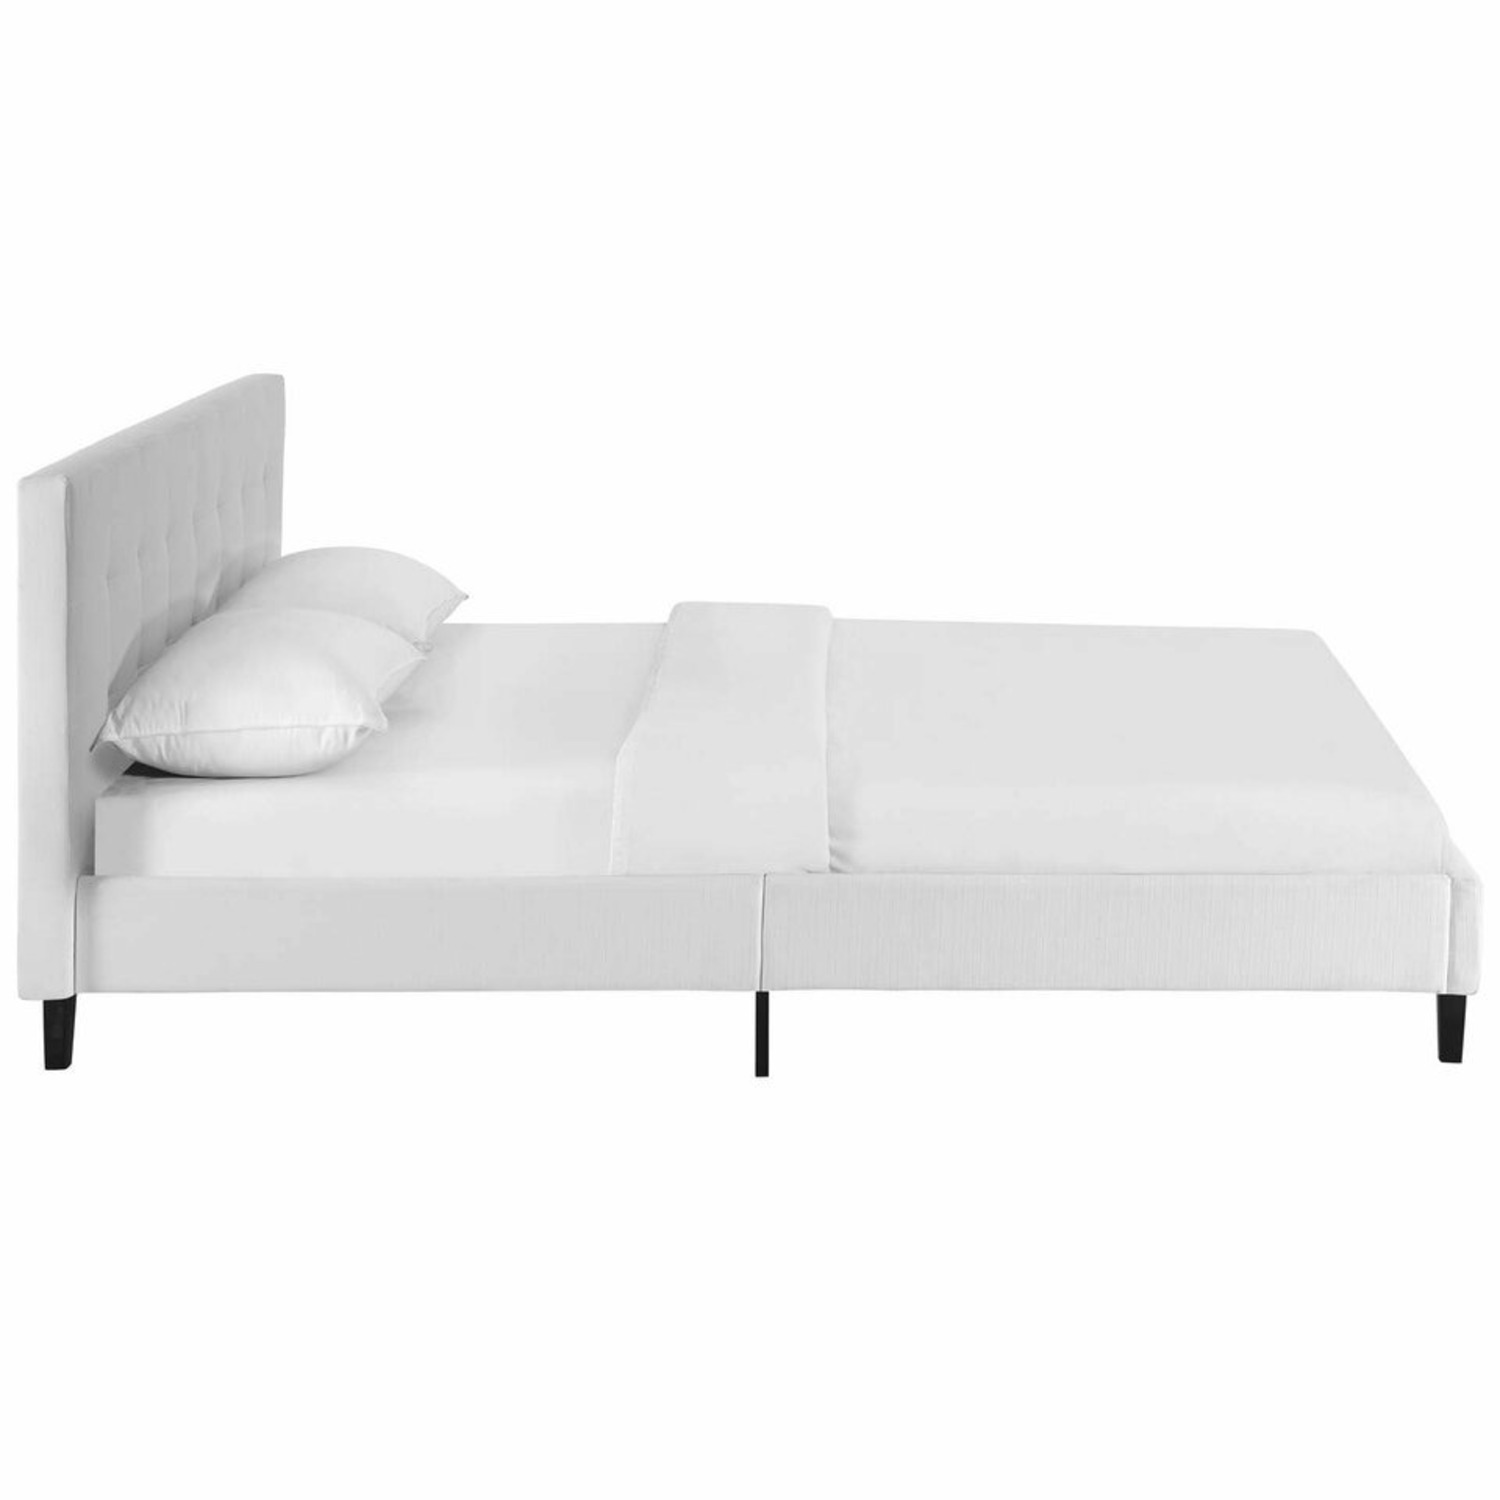 Full Bed In White Fabric Base & Tufted Headboard - image-2